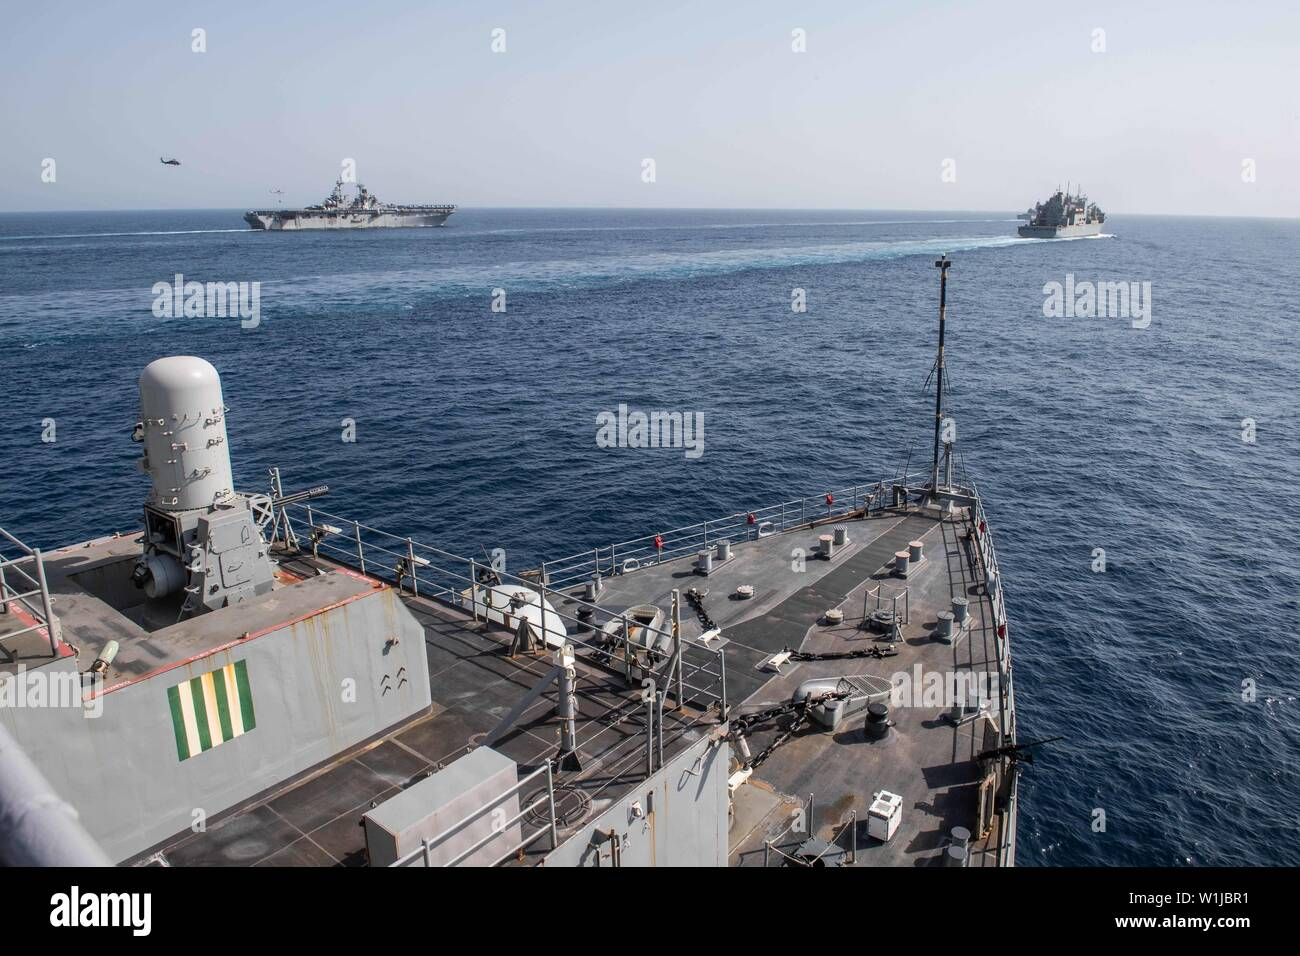 190630-N-HD110-0259  GULF OF ADEN (June 30, 2019) The amphibious dock landing ship USS Harpers Ferry (LSD 49) transits alongside the amphibious assault ship USS Boxer (LHD 4), left, while it completes a vertical replenishment with the Military Sealift Command dry cargo and ammunition ship USNS Cesar Chavez (T-AKE 14). Harpers Ferry is part of the Boxer Amphibious Ready Group and 11th Marine Expeditionary Unit and is deployed to the U.S. 5th Fleet area of operations in support of naval operations to ensure maritime stability and security in the Central Region, connecting the Mediterranean and t - Stock Image